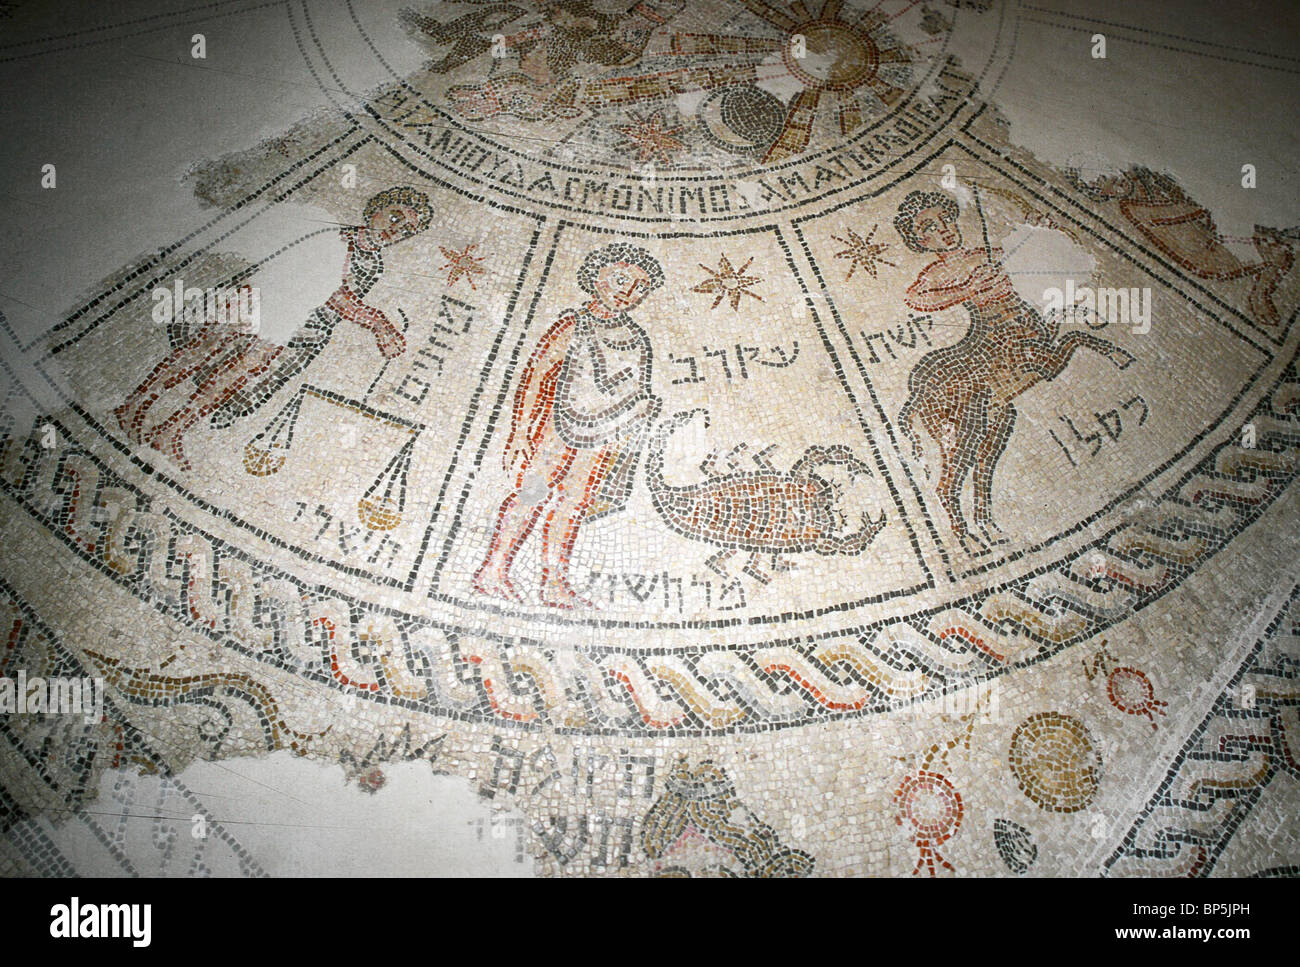 SEPPHORIS SYNAGOGUE DATING FROM C. 5TH. C. AD. DETAIL OF THE MOSAIC FLOOR DEPICTING THE ZODIAC: SYMBOL OF SCORPIO - Stock Image